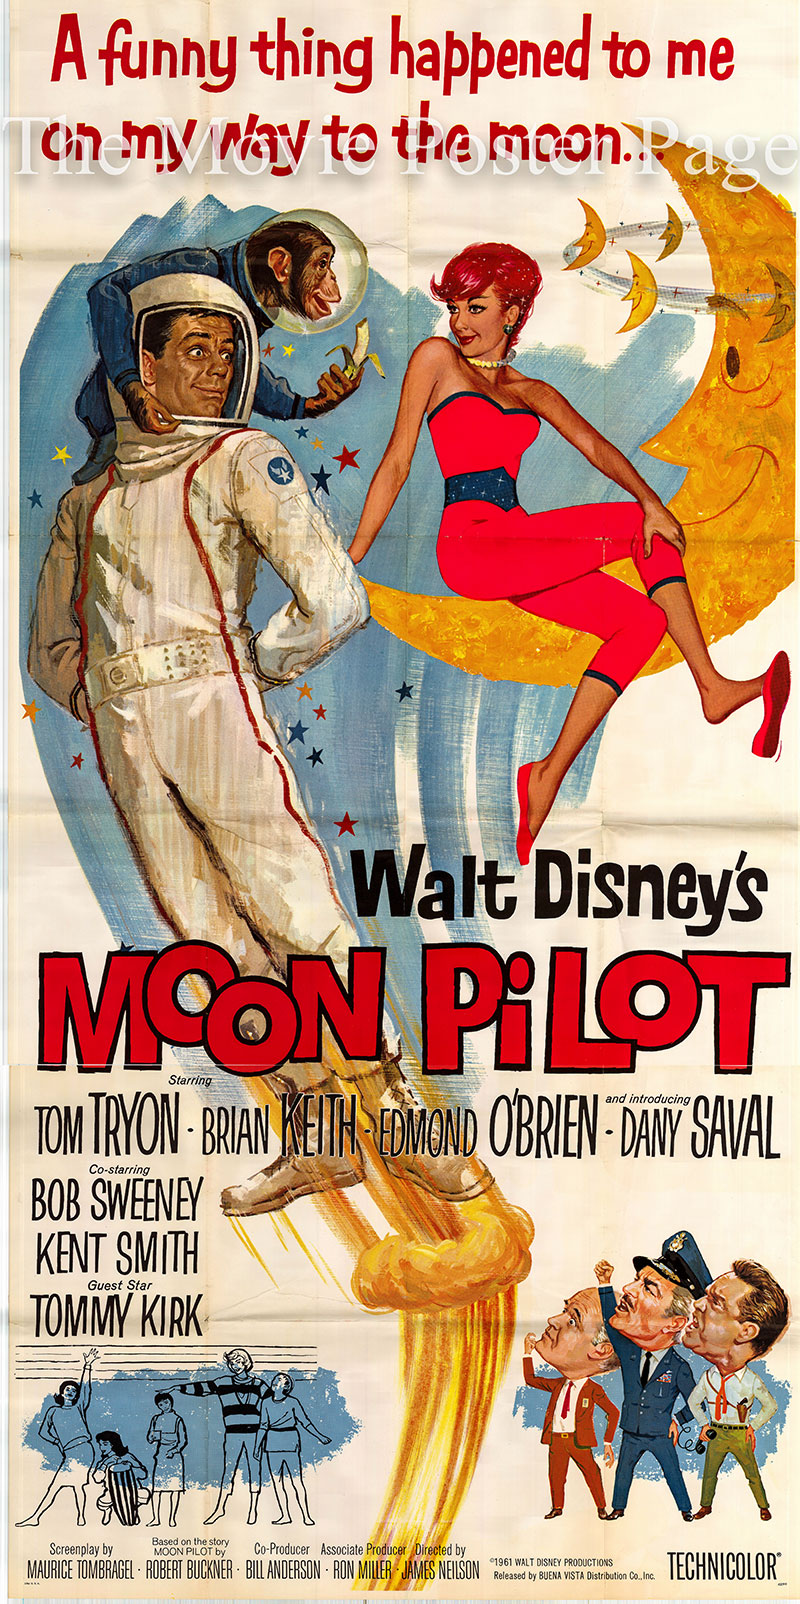 Pictured is a us three-sheet poster for the 1962 James Neilson film Moon Pilot starring Tom Tryon as Captain Richmond Talbot.